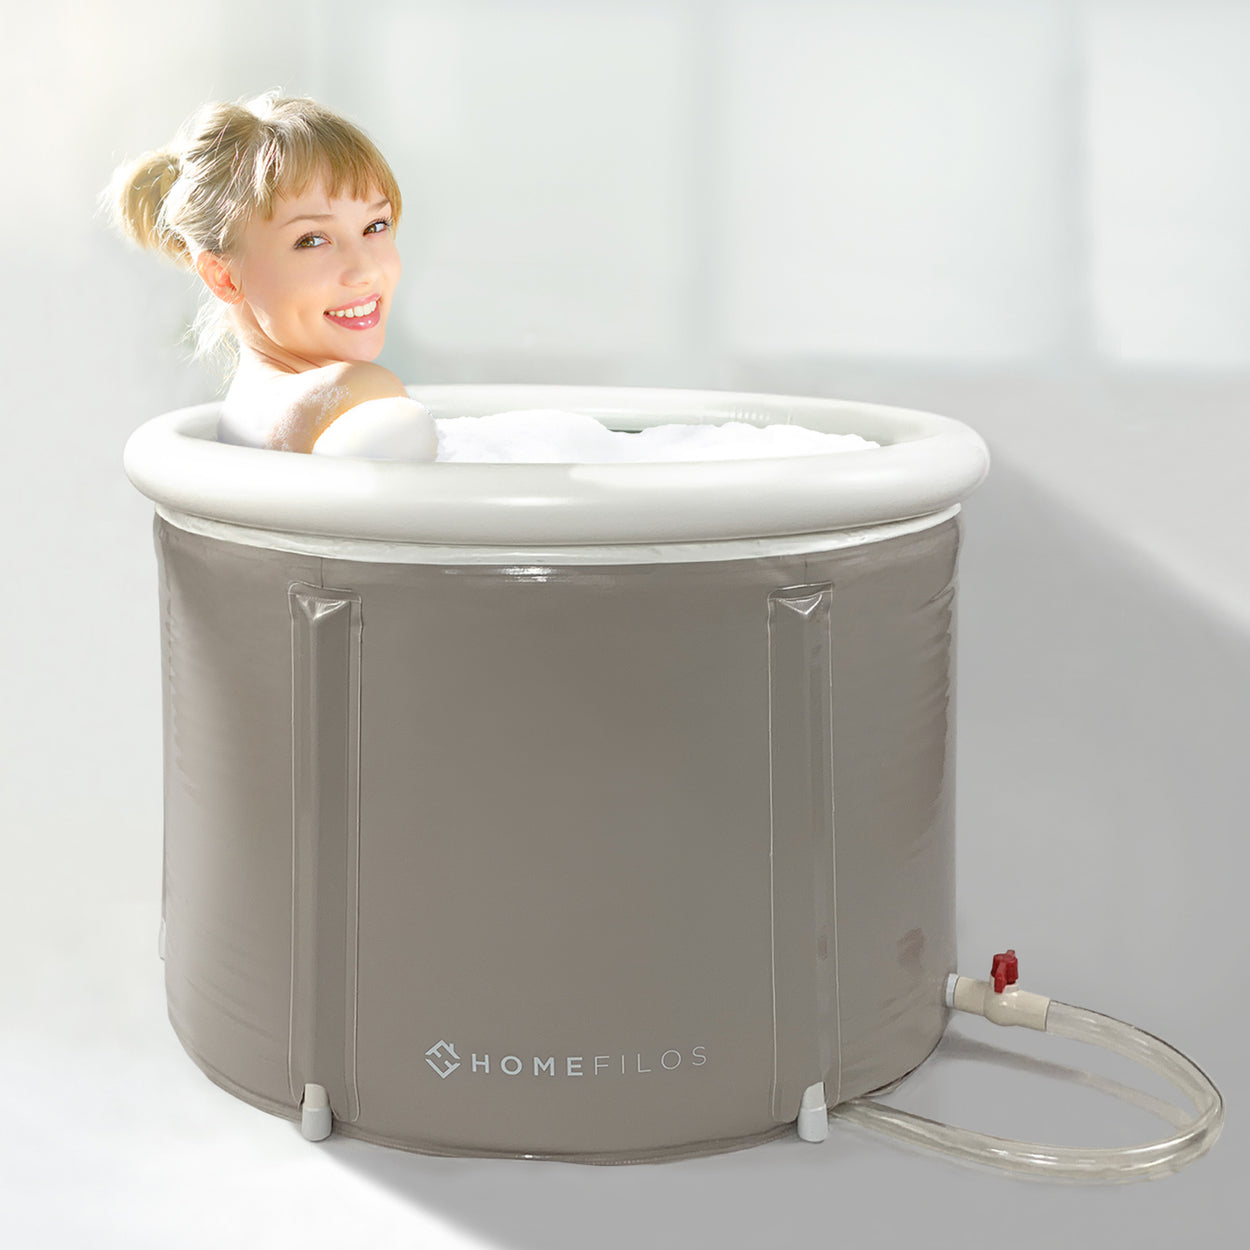 Portable Bathtub (SMALL) by Homefilos, Japanese Soaking Bath Tub for Shower Stall